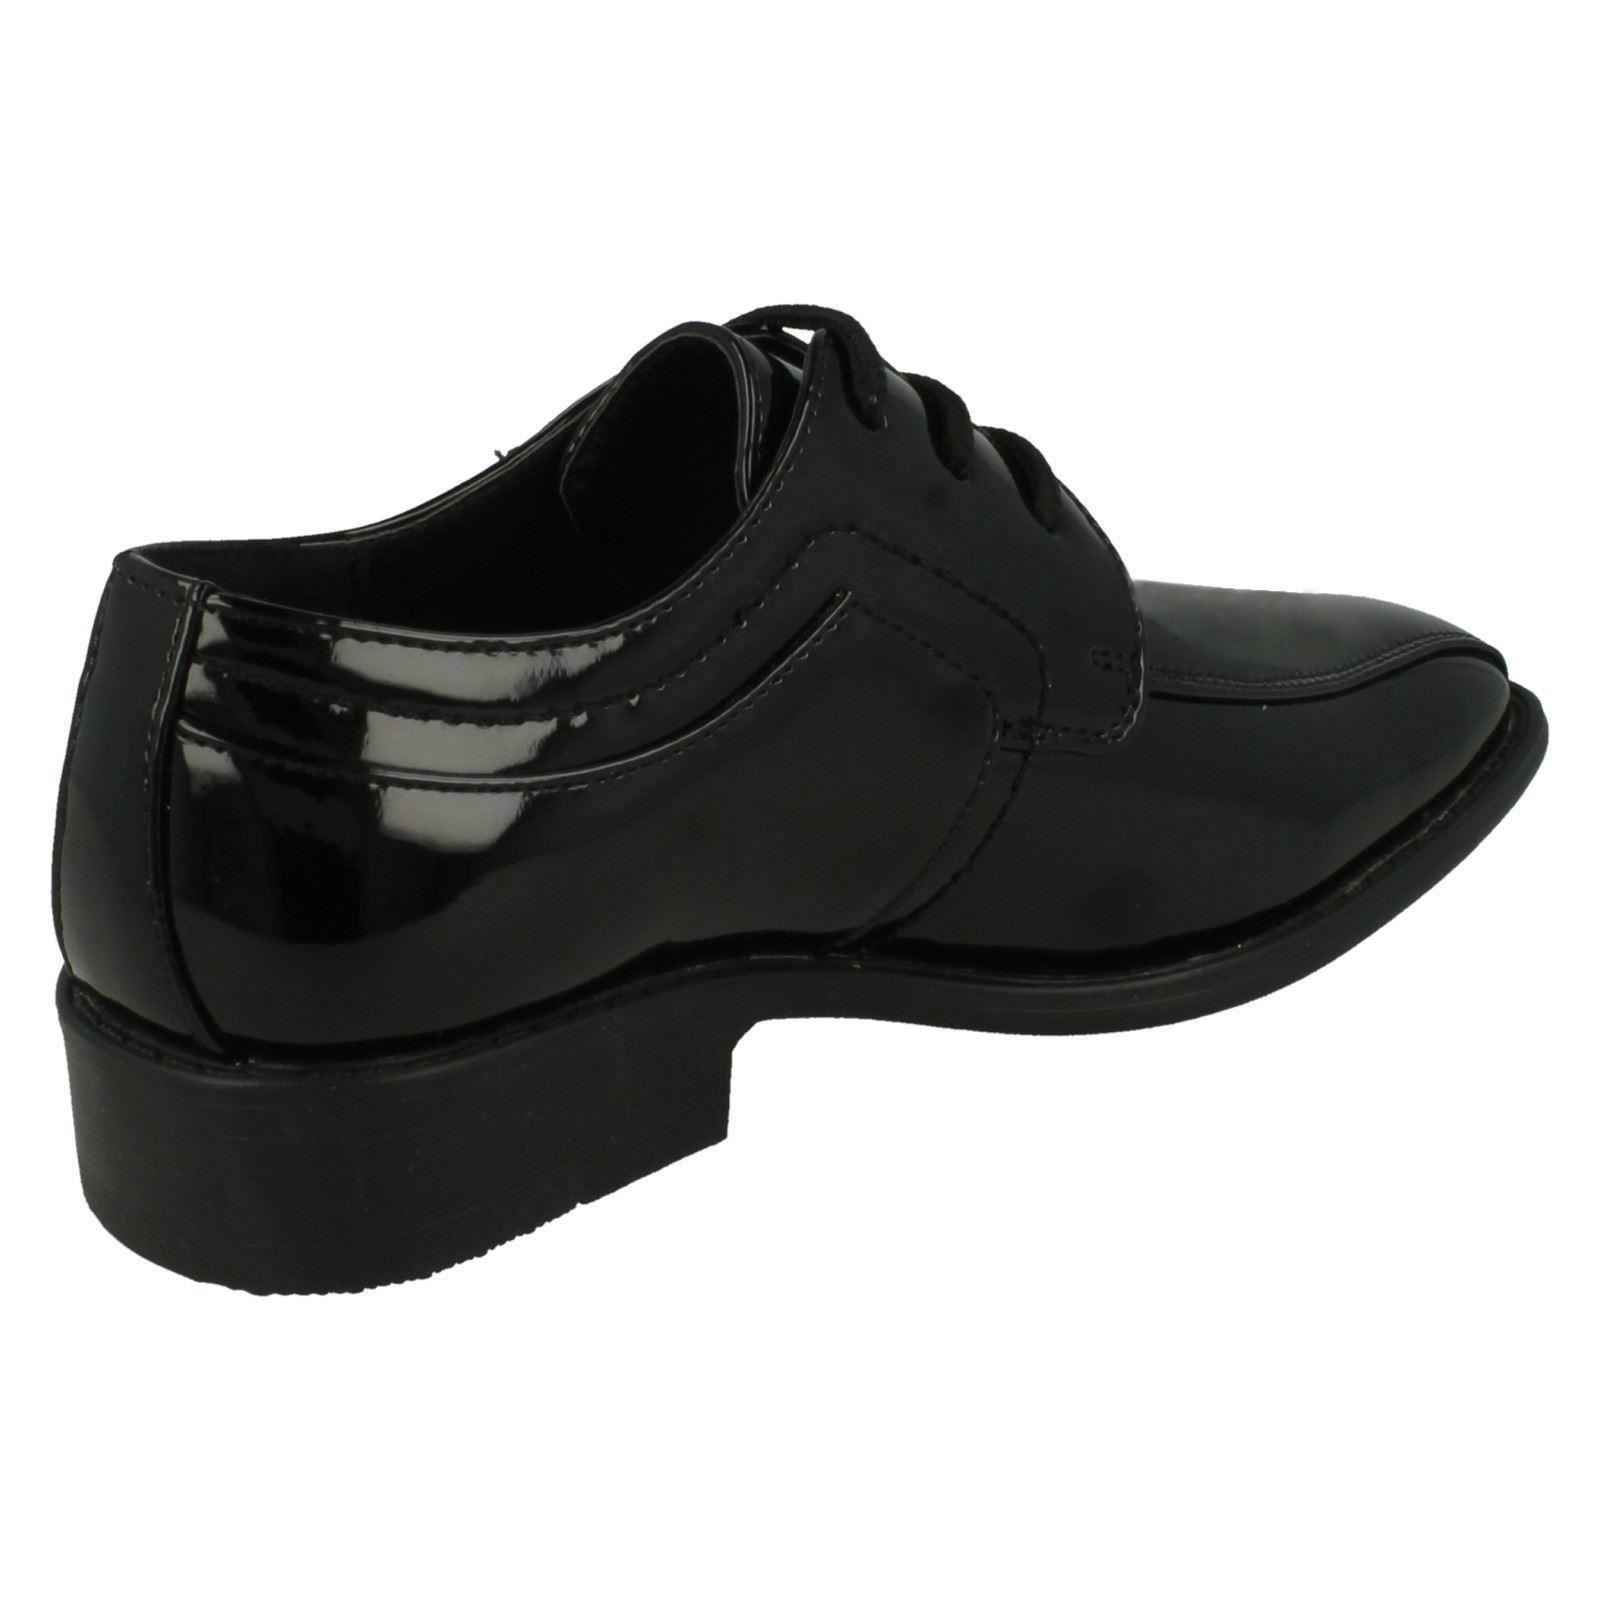 Boys JCDees Lace Up Formal Black Shoe N1111 Great Sale Price!